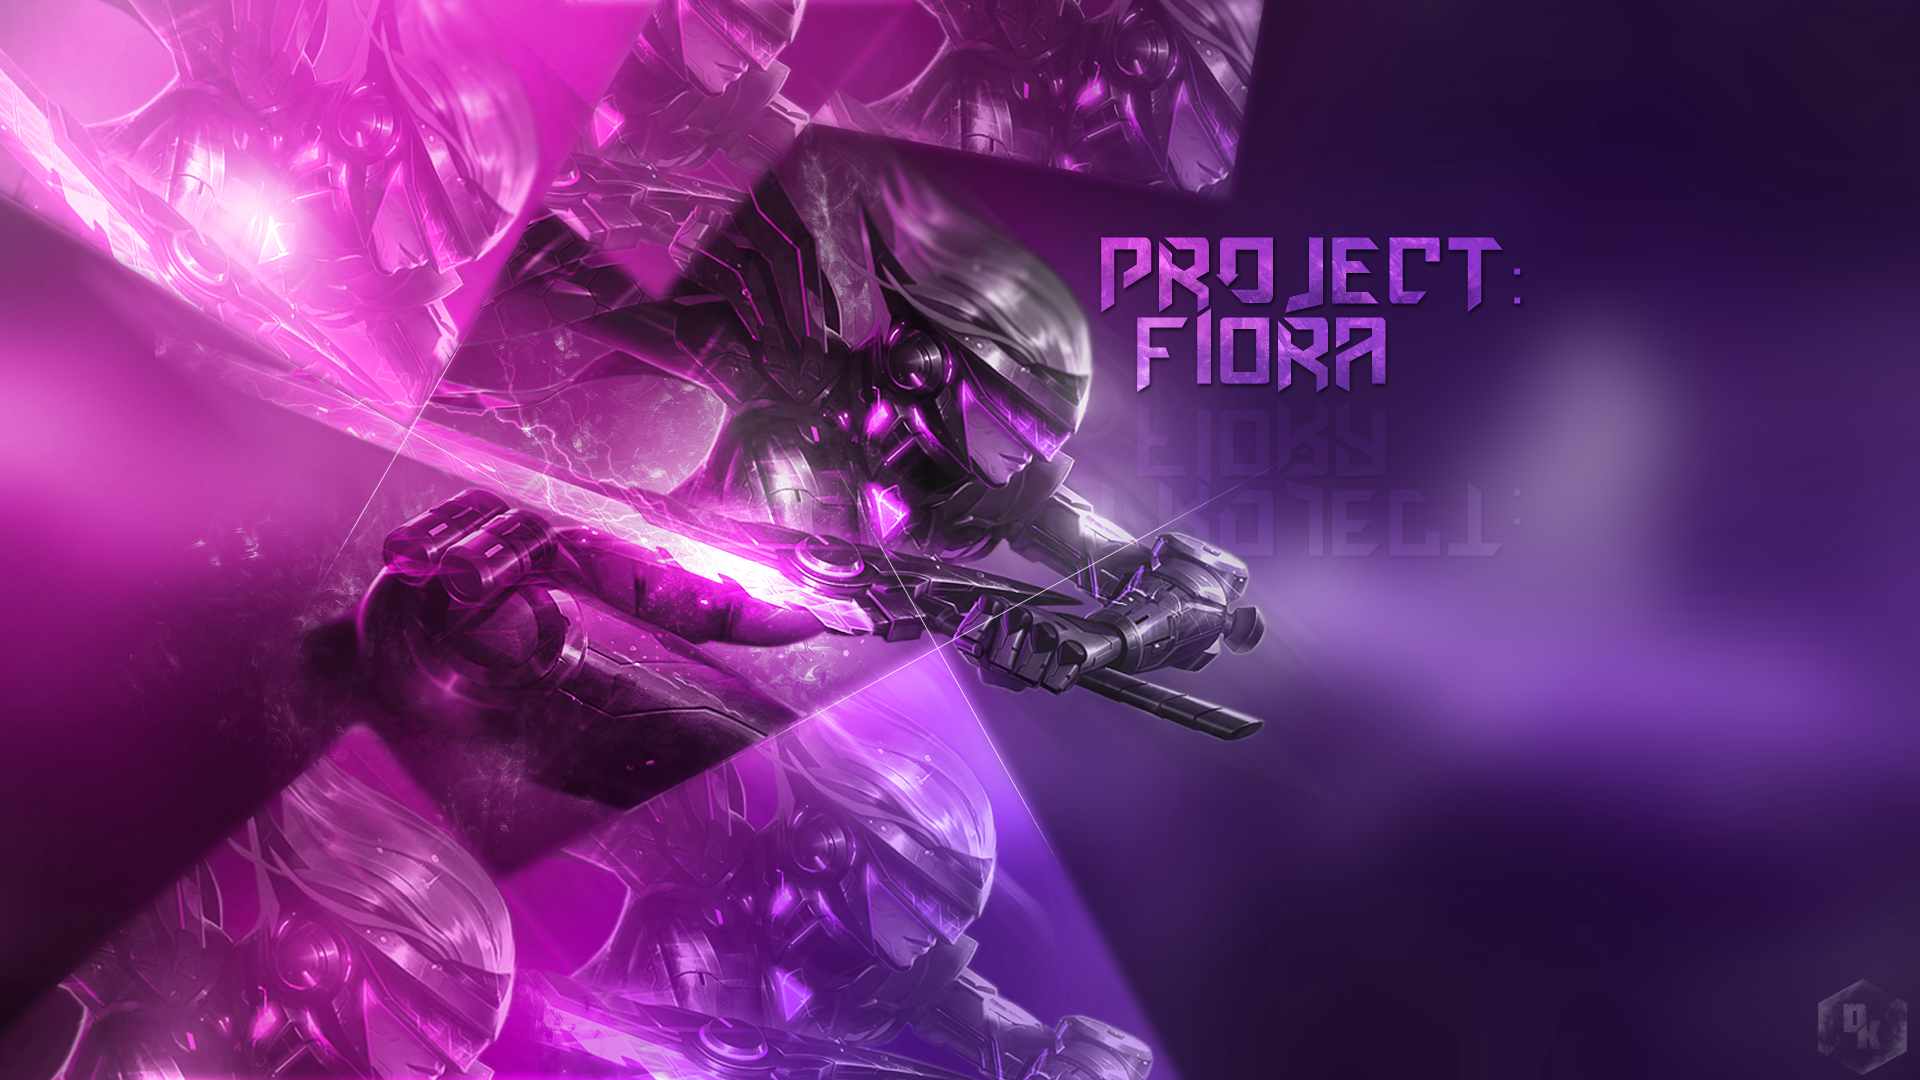 project__fiora_by_dwindlekin-d98cry0